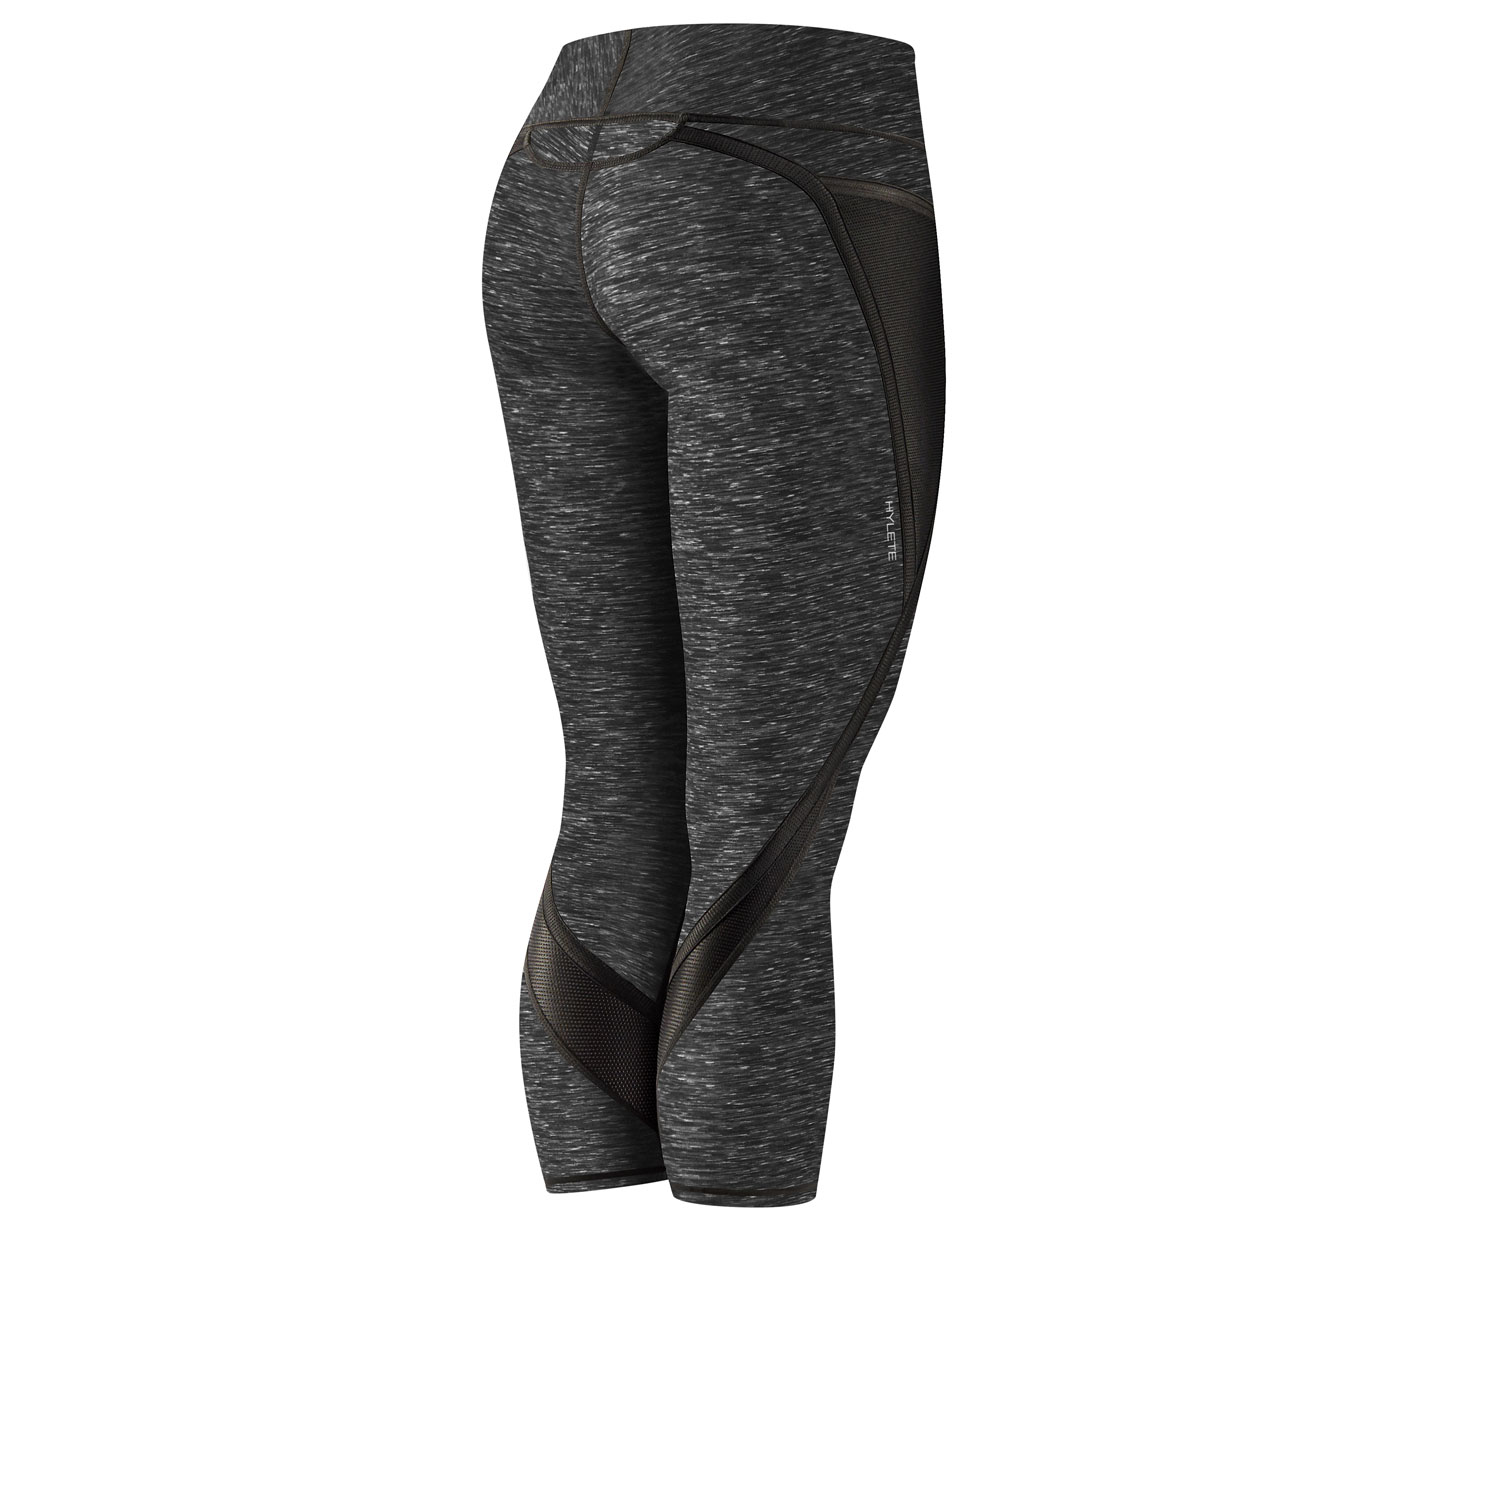 100/% Polyester Material Black Pre-Cut Leg//Calf Sleeves by We Ball Sports